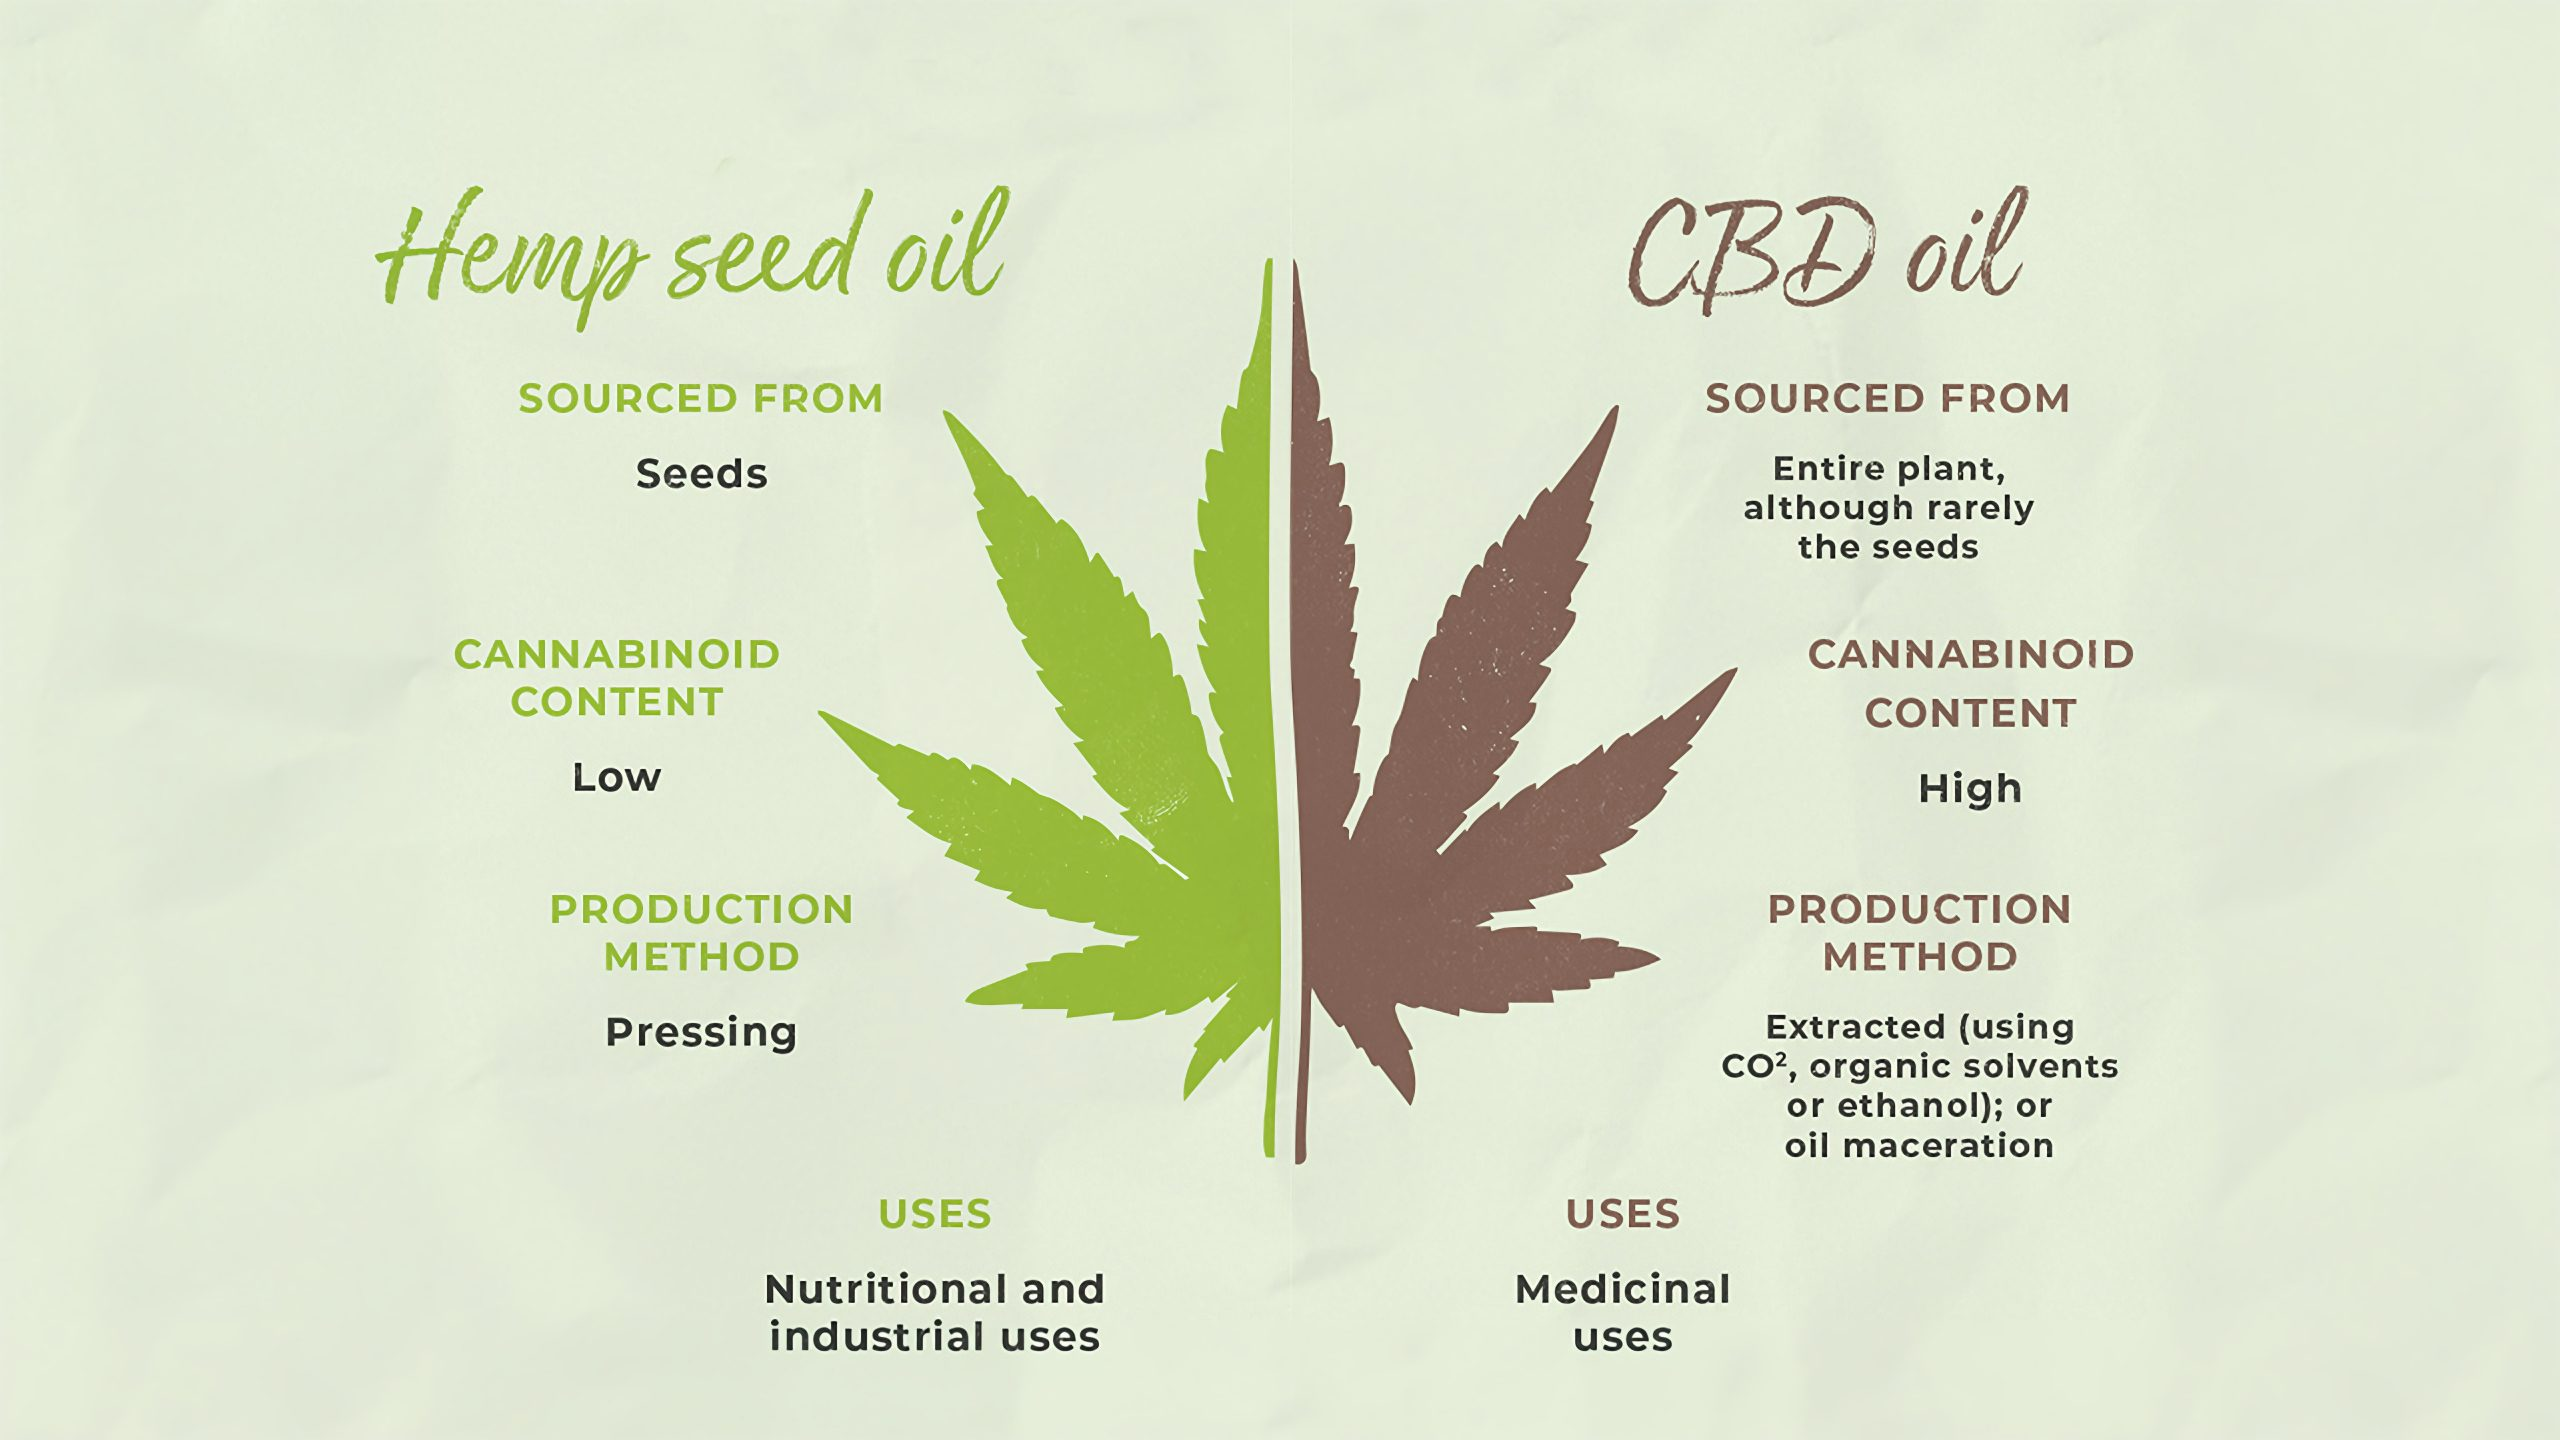 Hemp Seed Oil vs CBD Oil: Main Differences